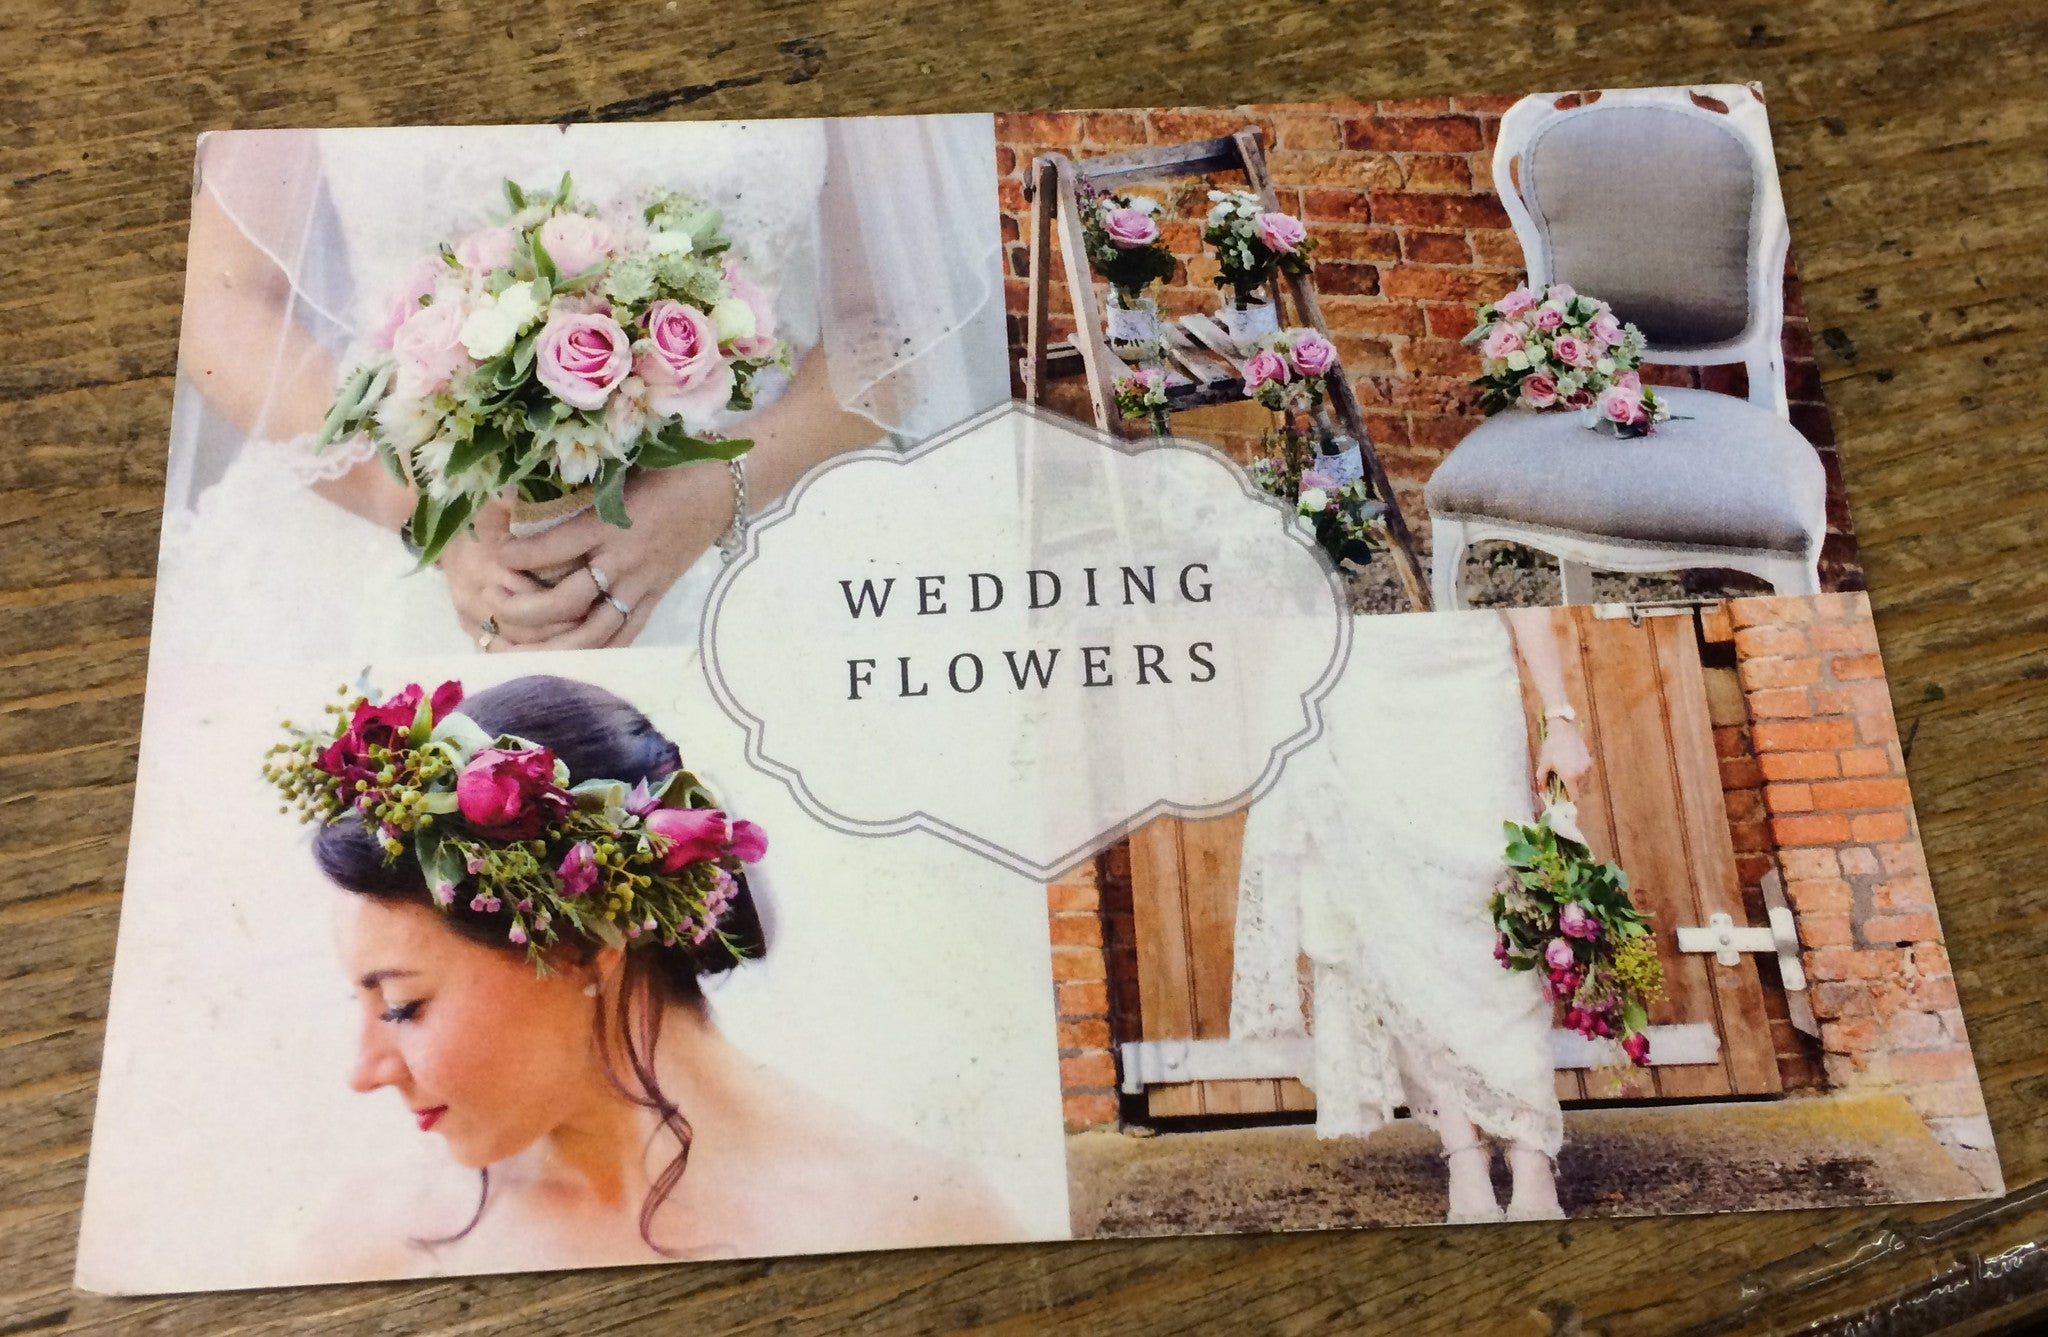 Wedding flowers advertisement card